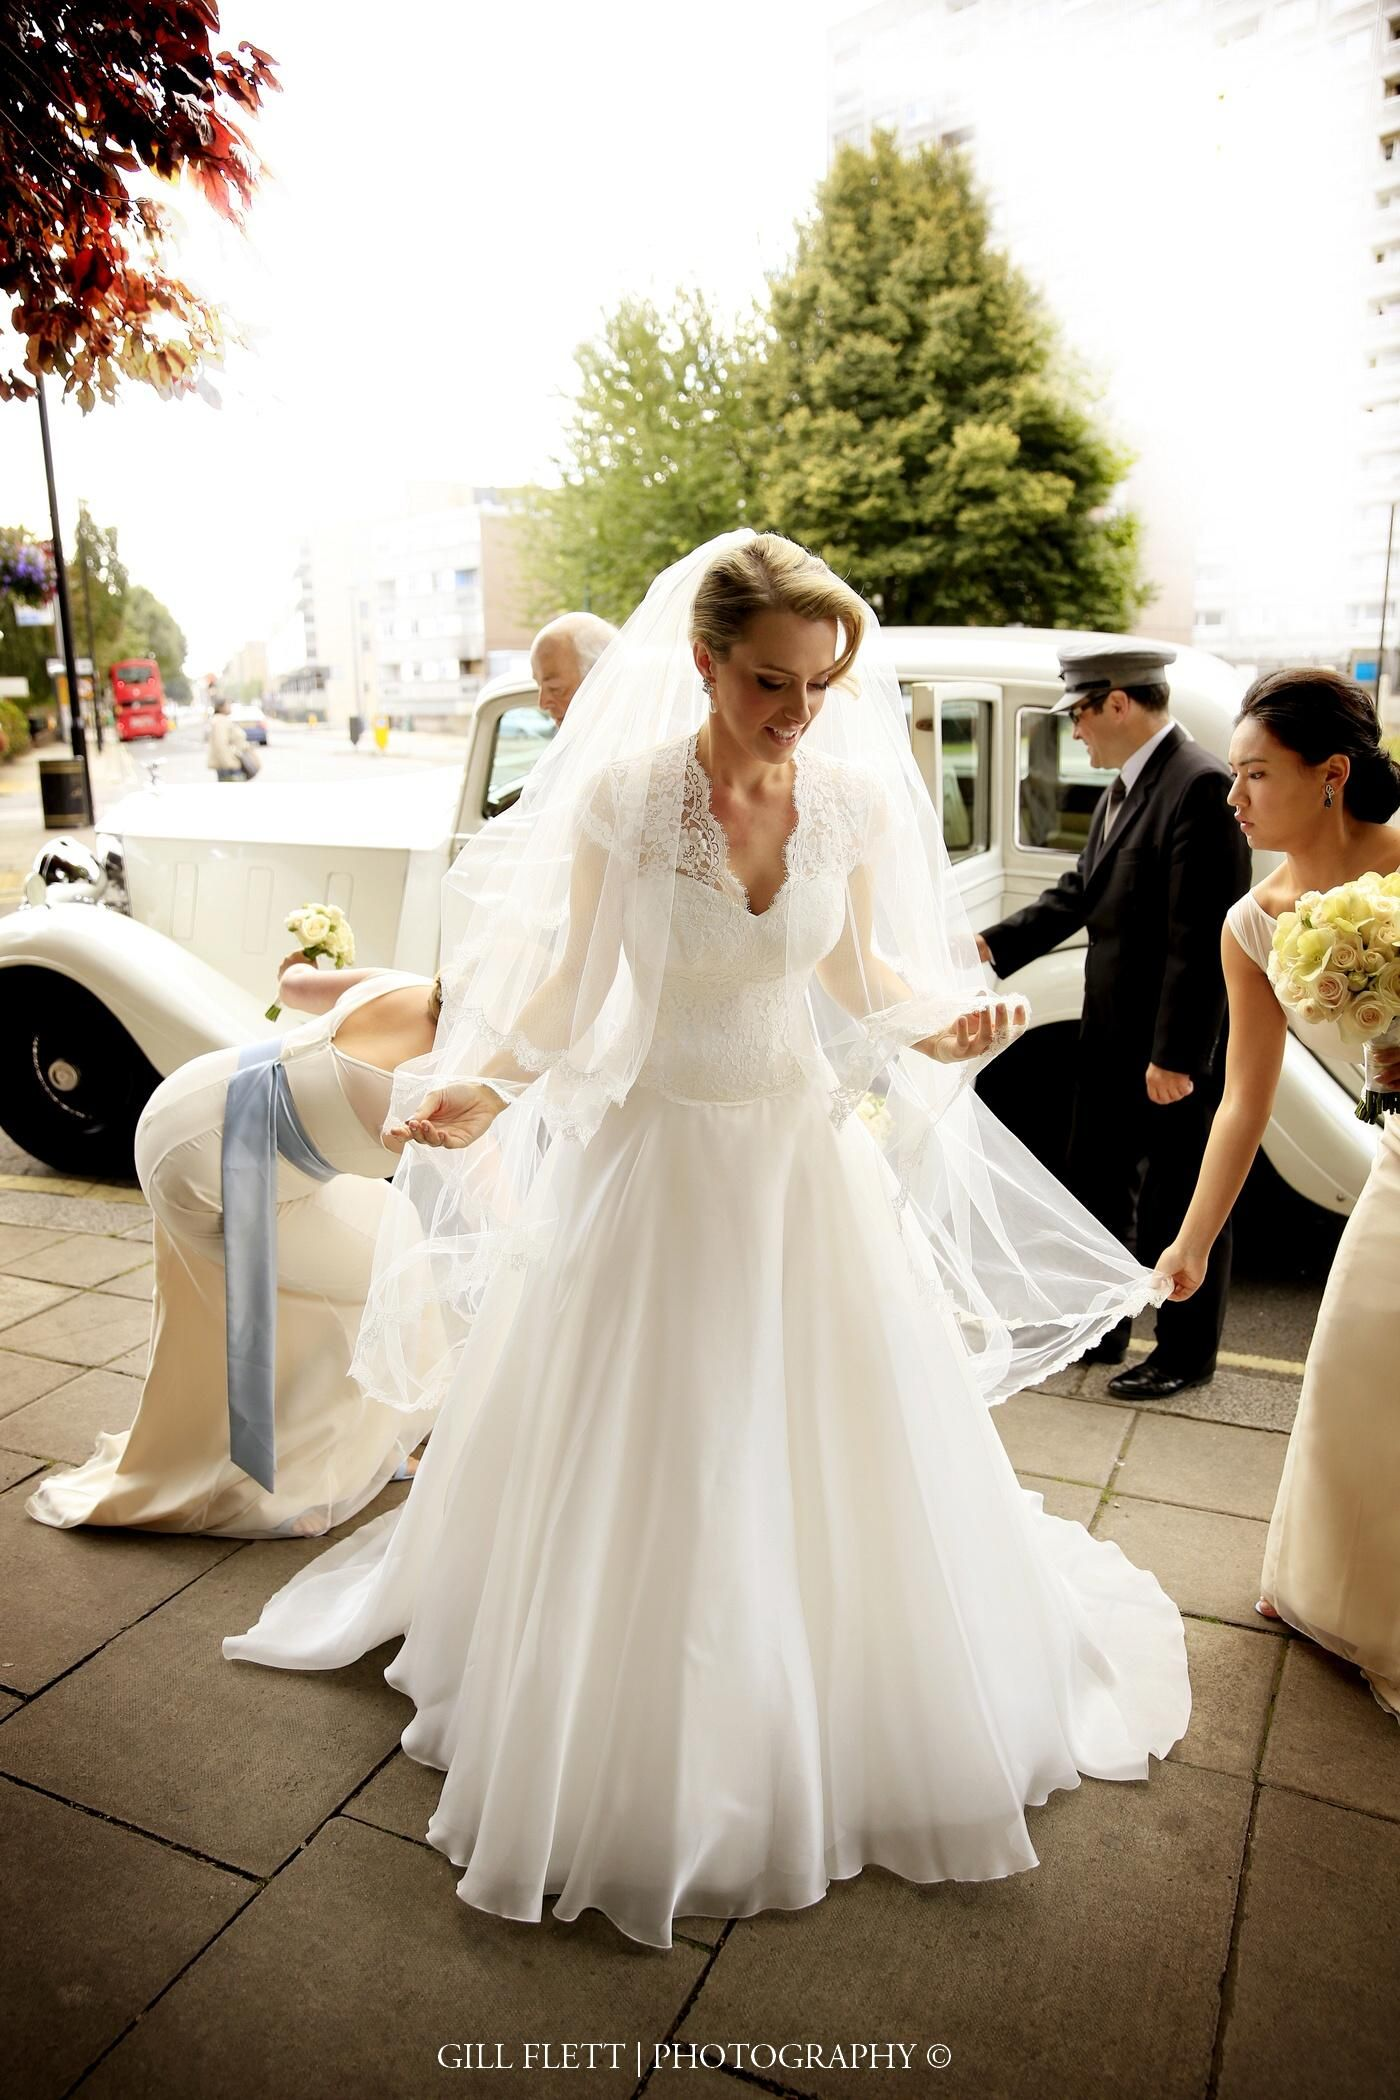 One of our beautiful Real Brides Lauren wearing Suzanne Neville gown ...